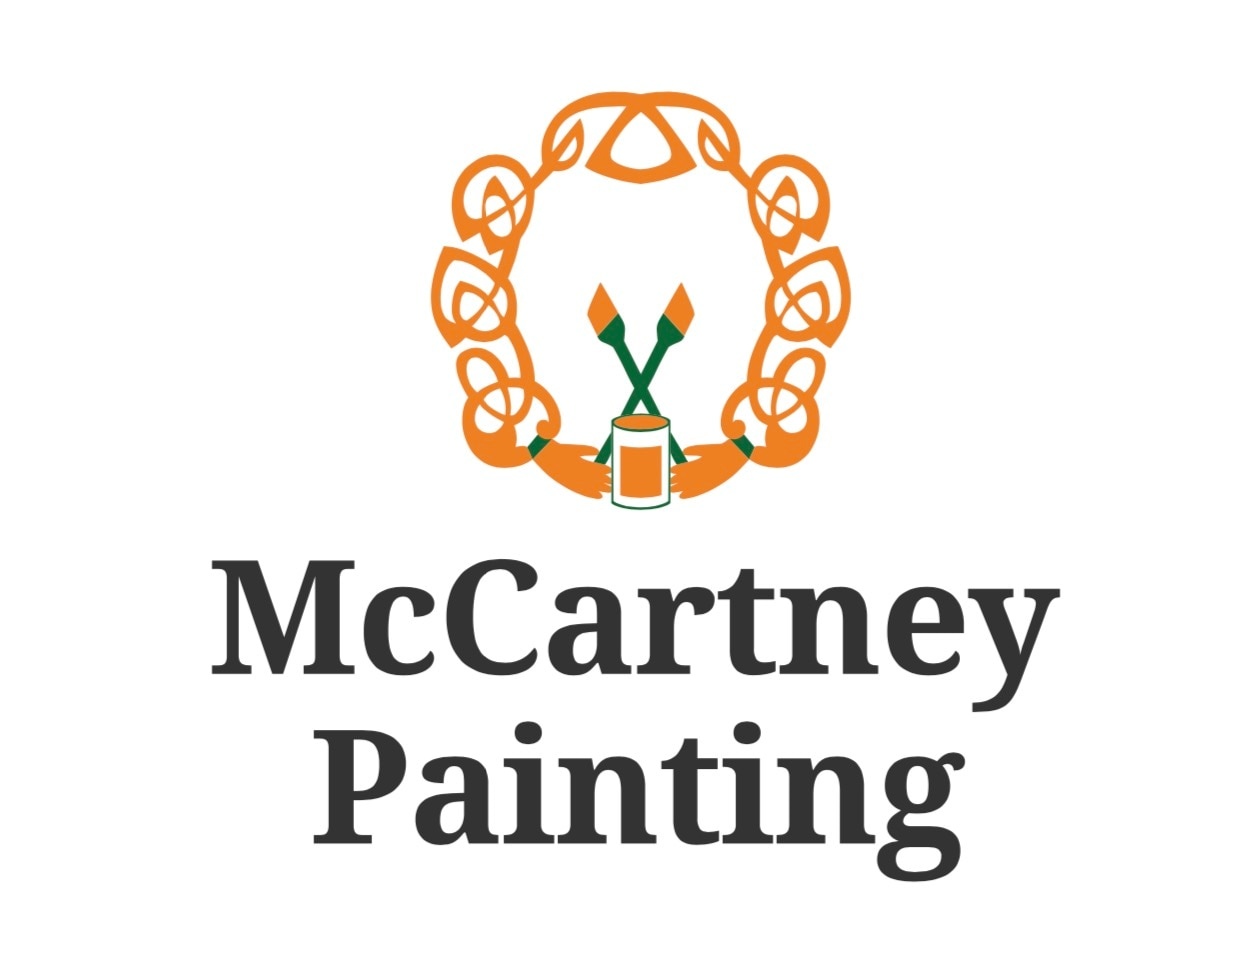 Mccartney Painting logo